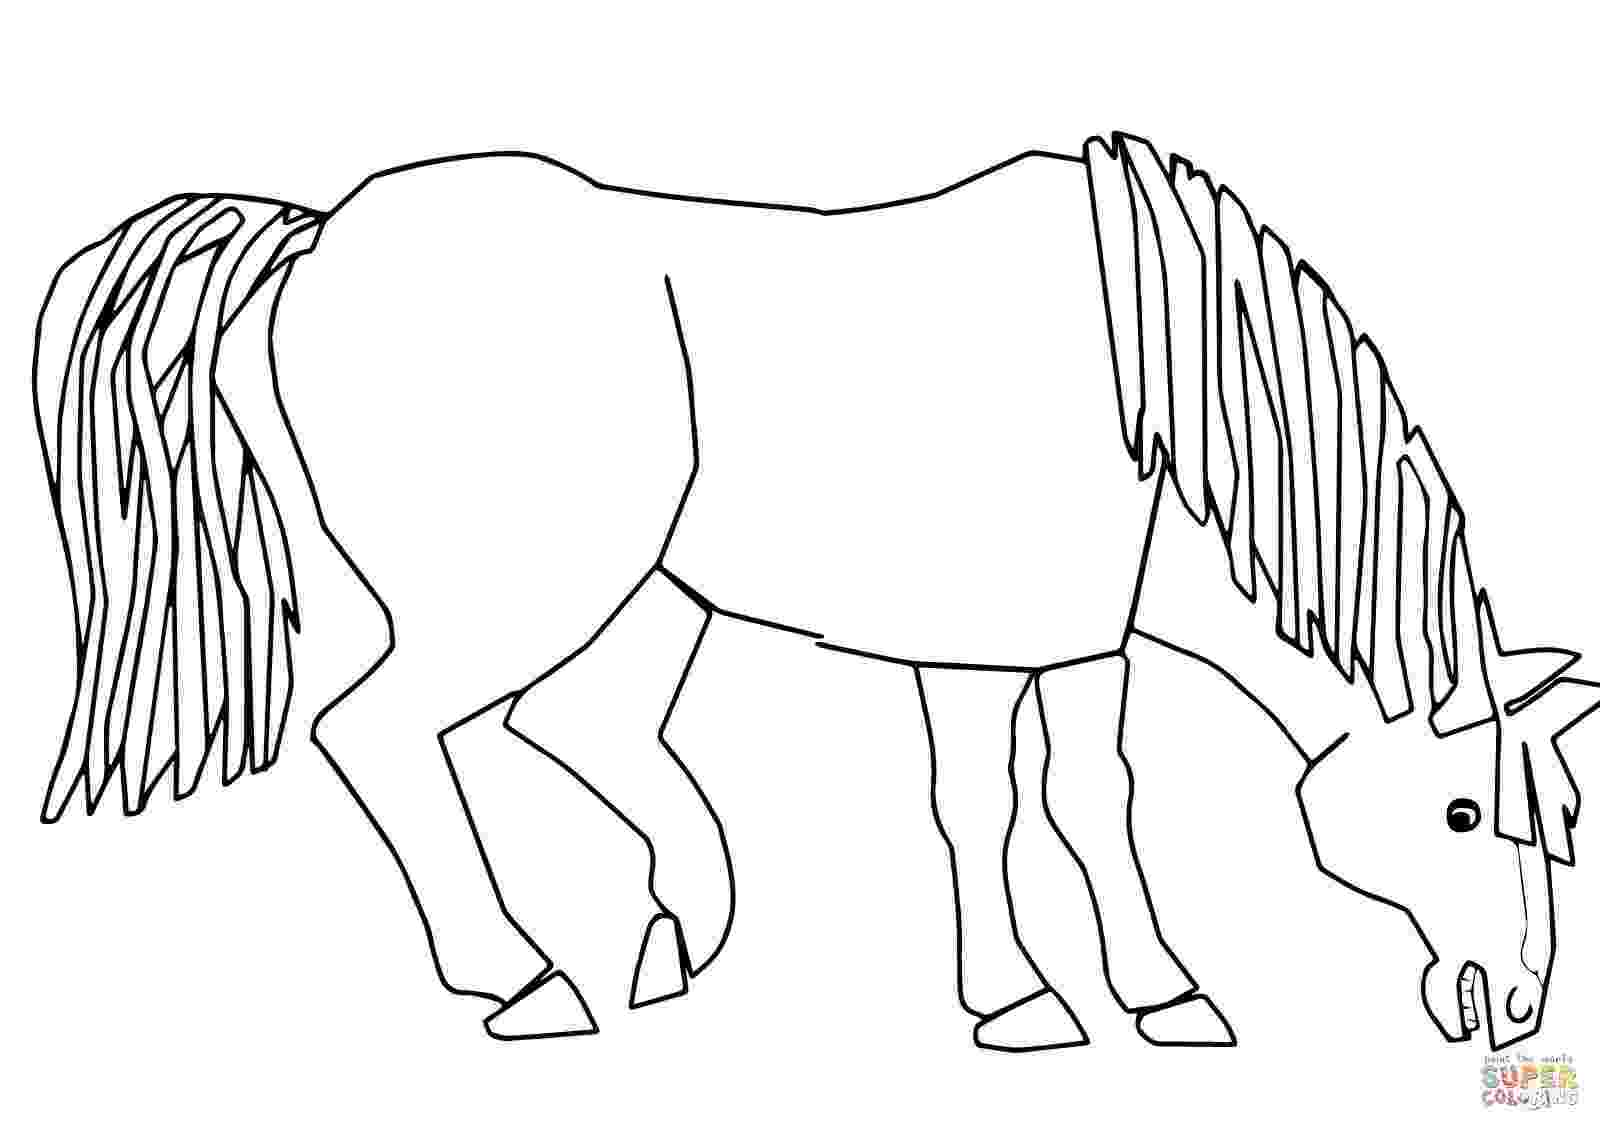 brown bear what do you see coloring pages blue horse blue horse what do you see coloring page from bear pages what do you brown coloring see